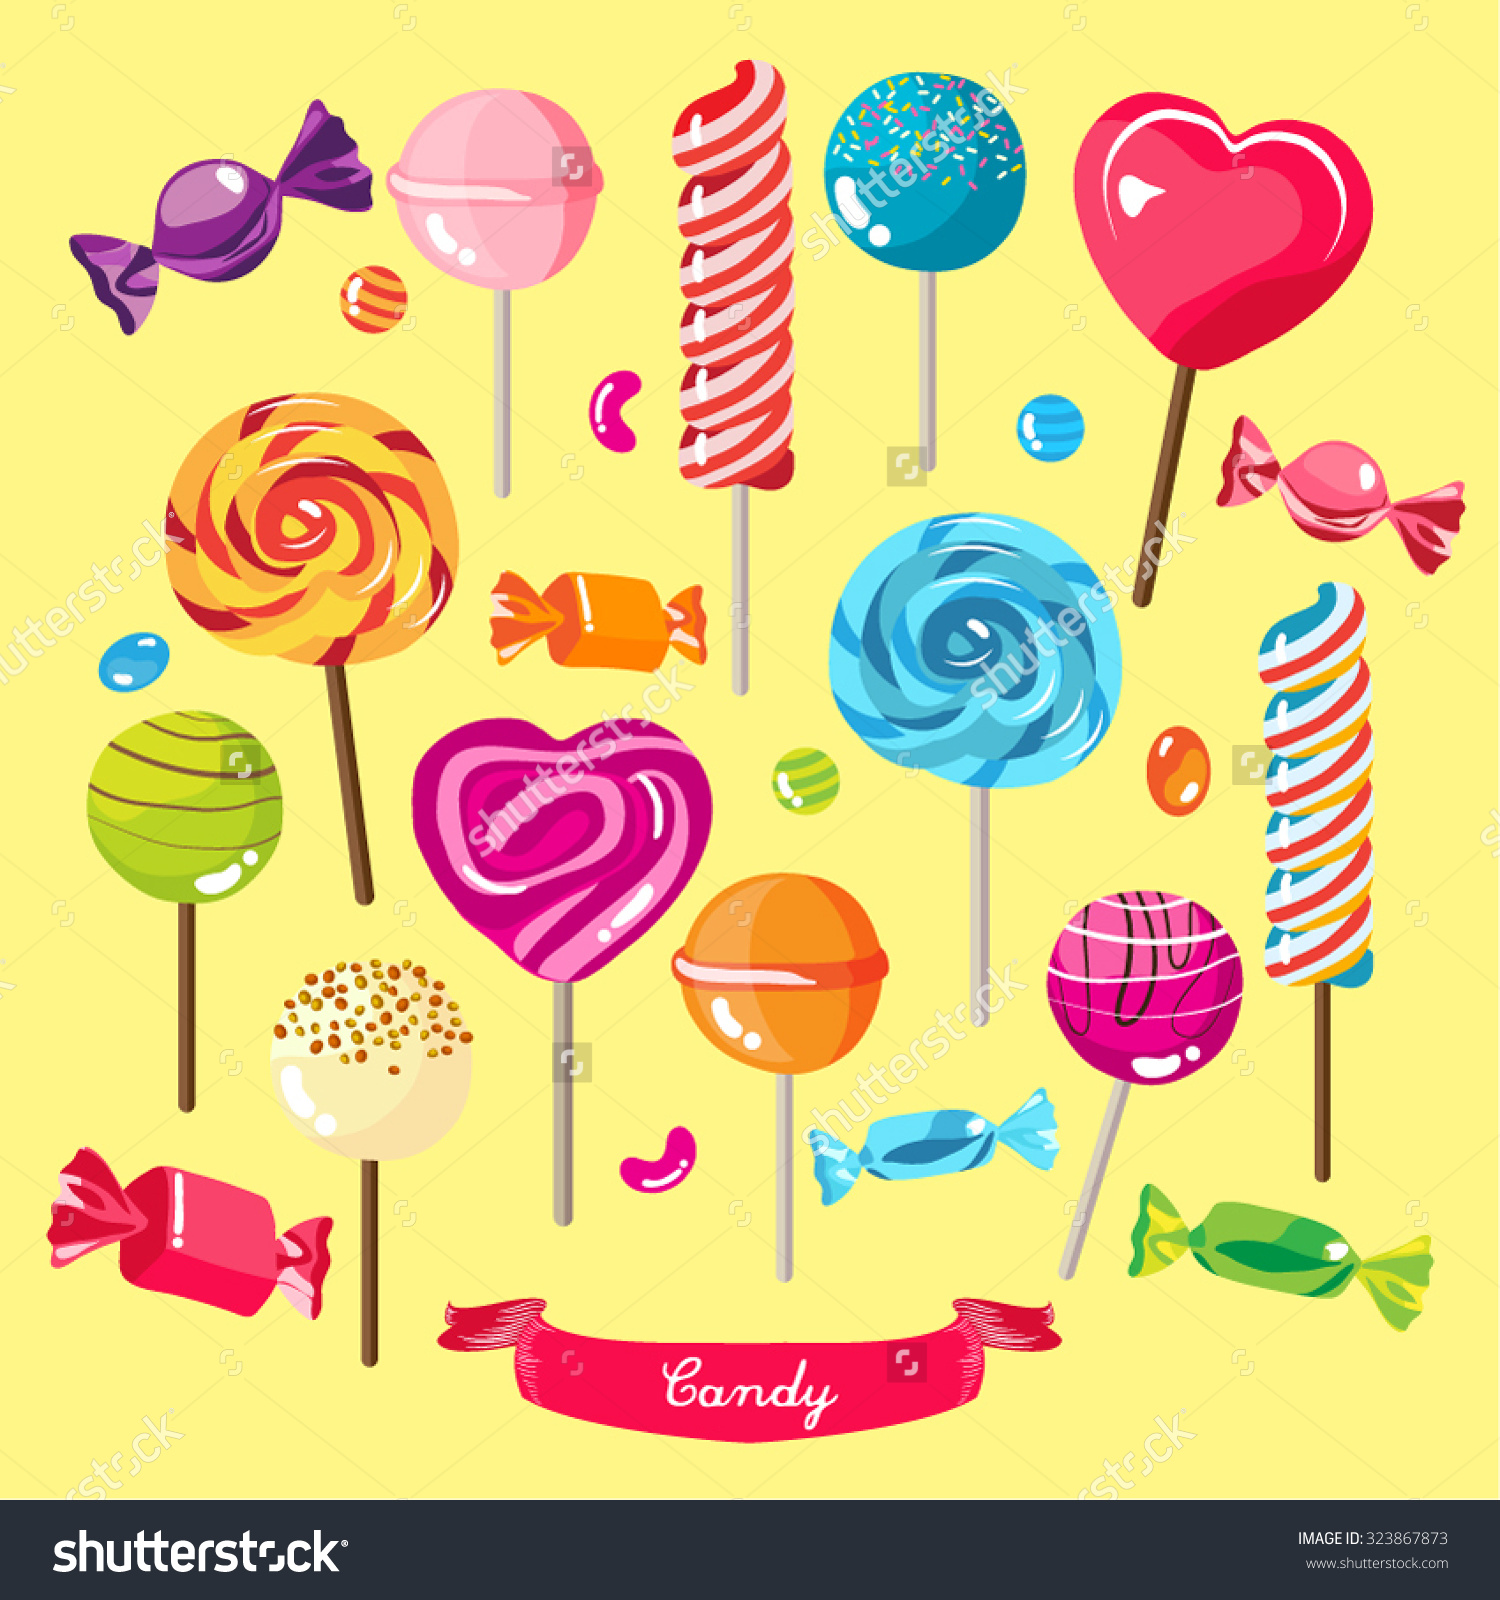 Different Types Candies Vector Design Illustration Stock.